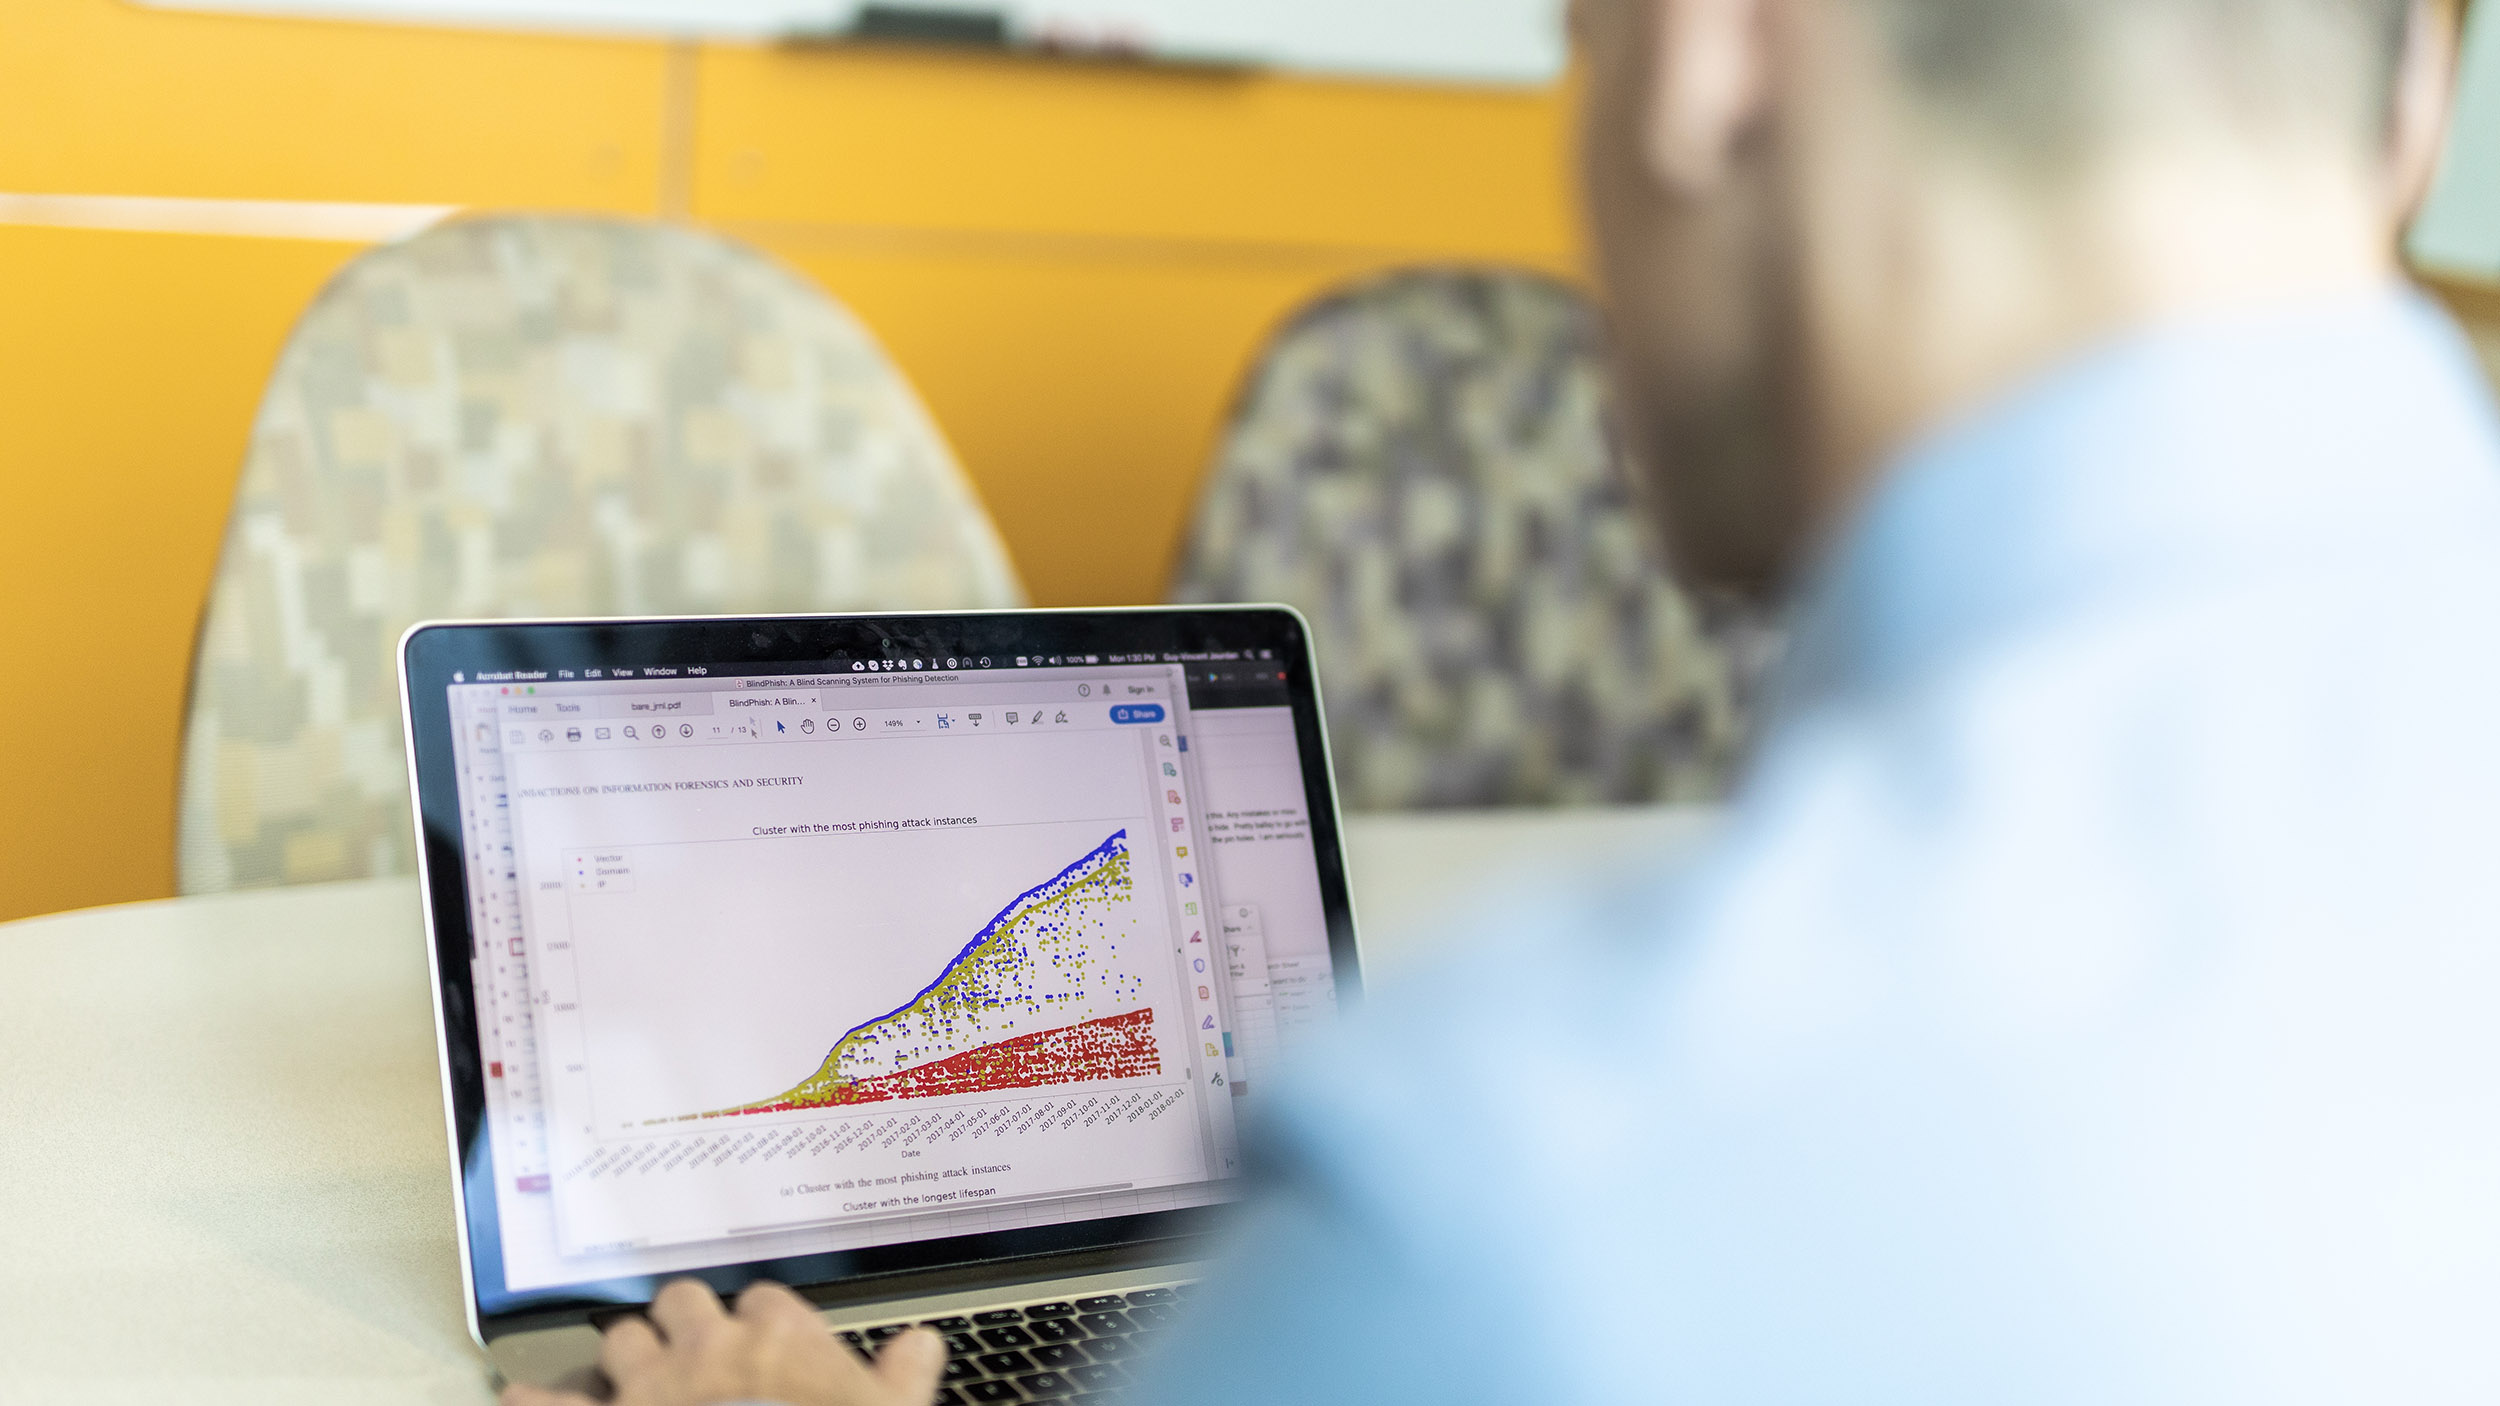 A man looks at a graph presenting data related to cybercrime on a laptop computer.